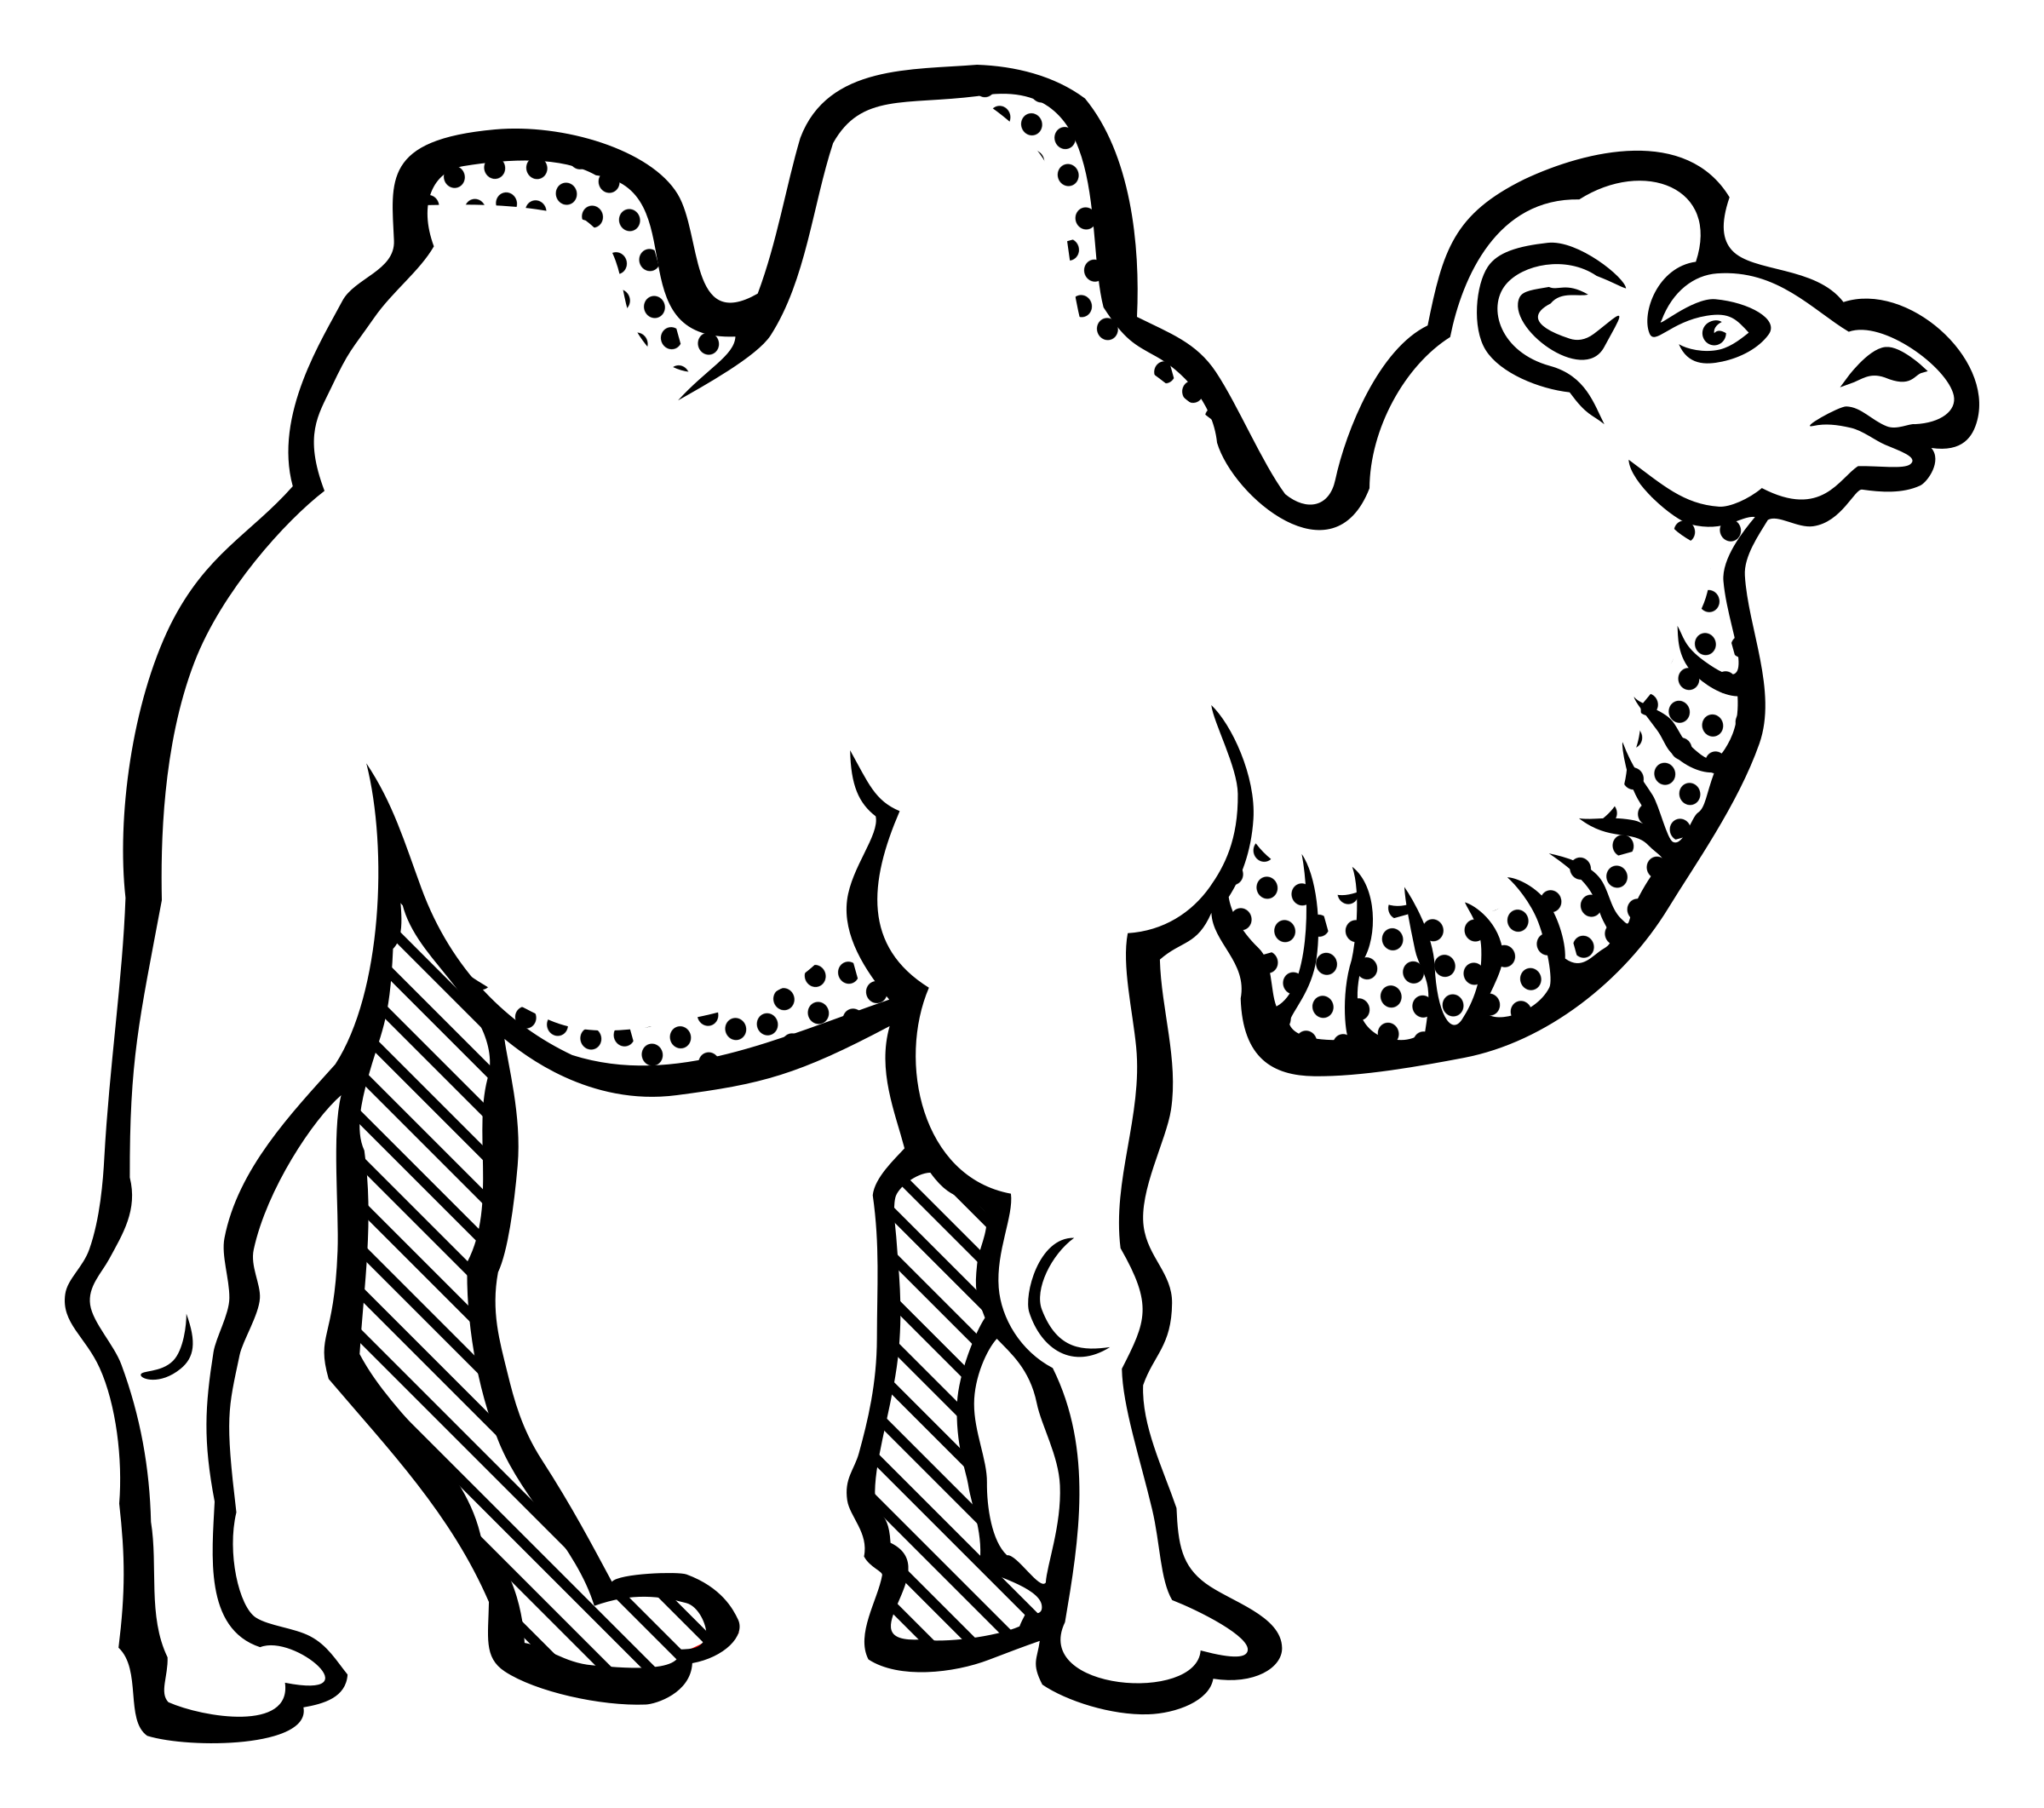 Camel png black and white transparent camel black and white